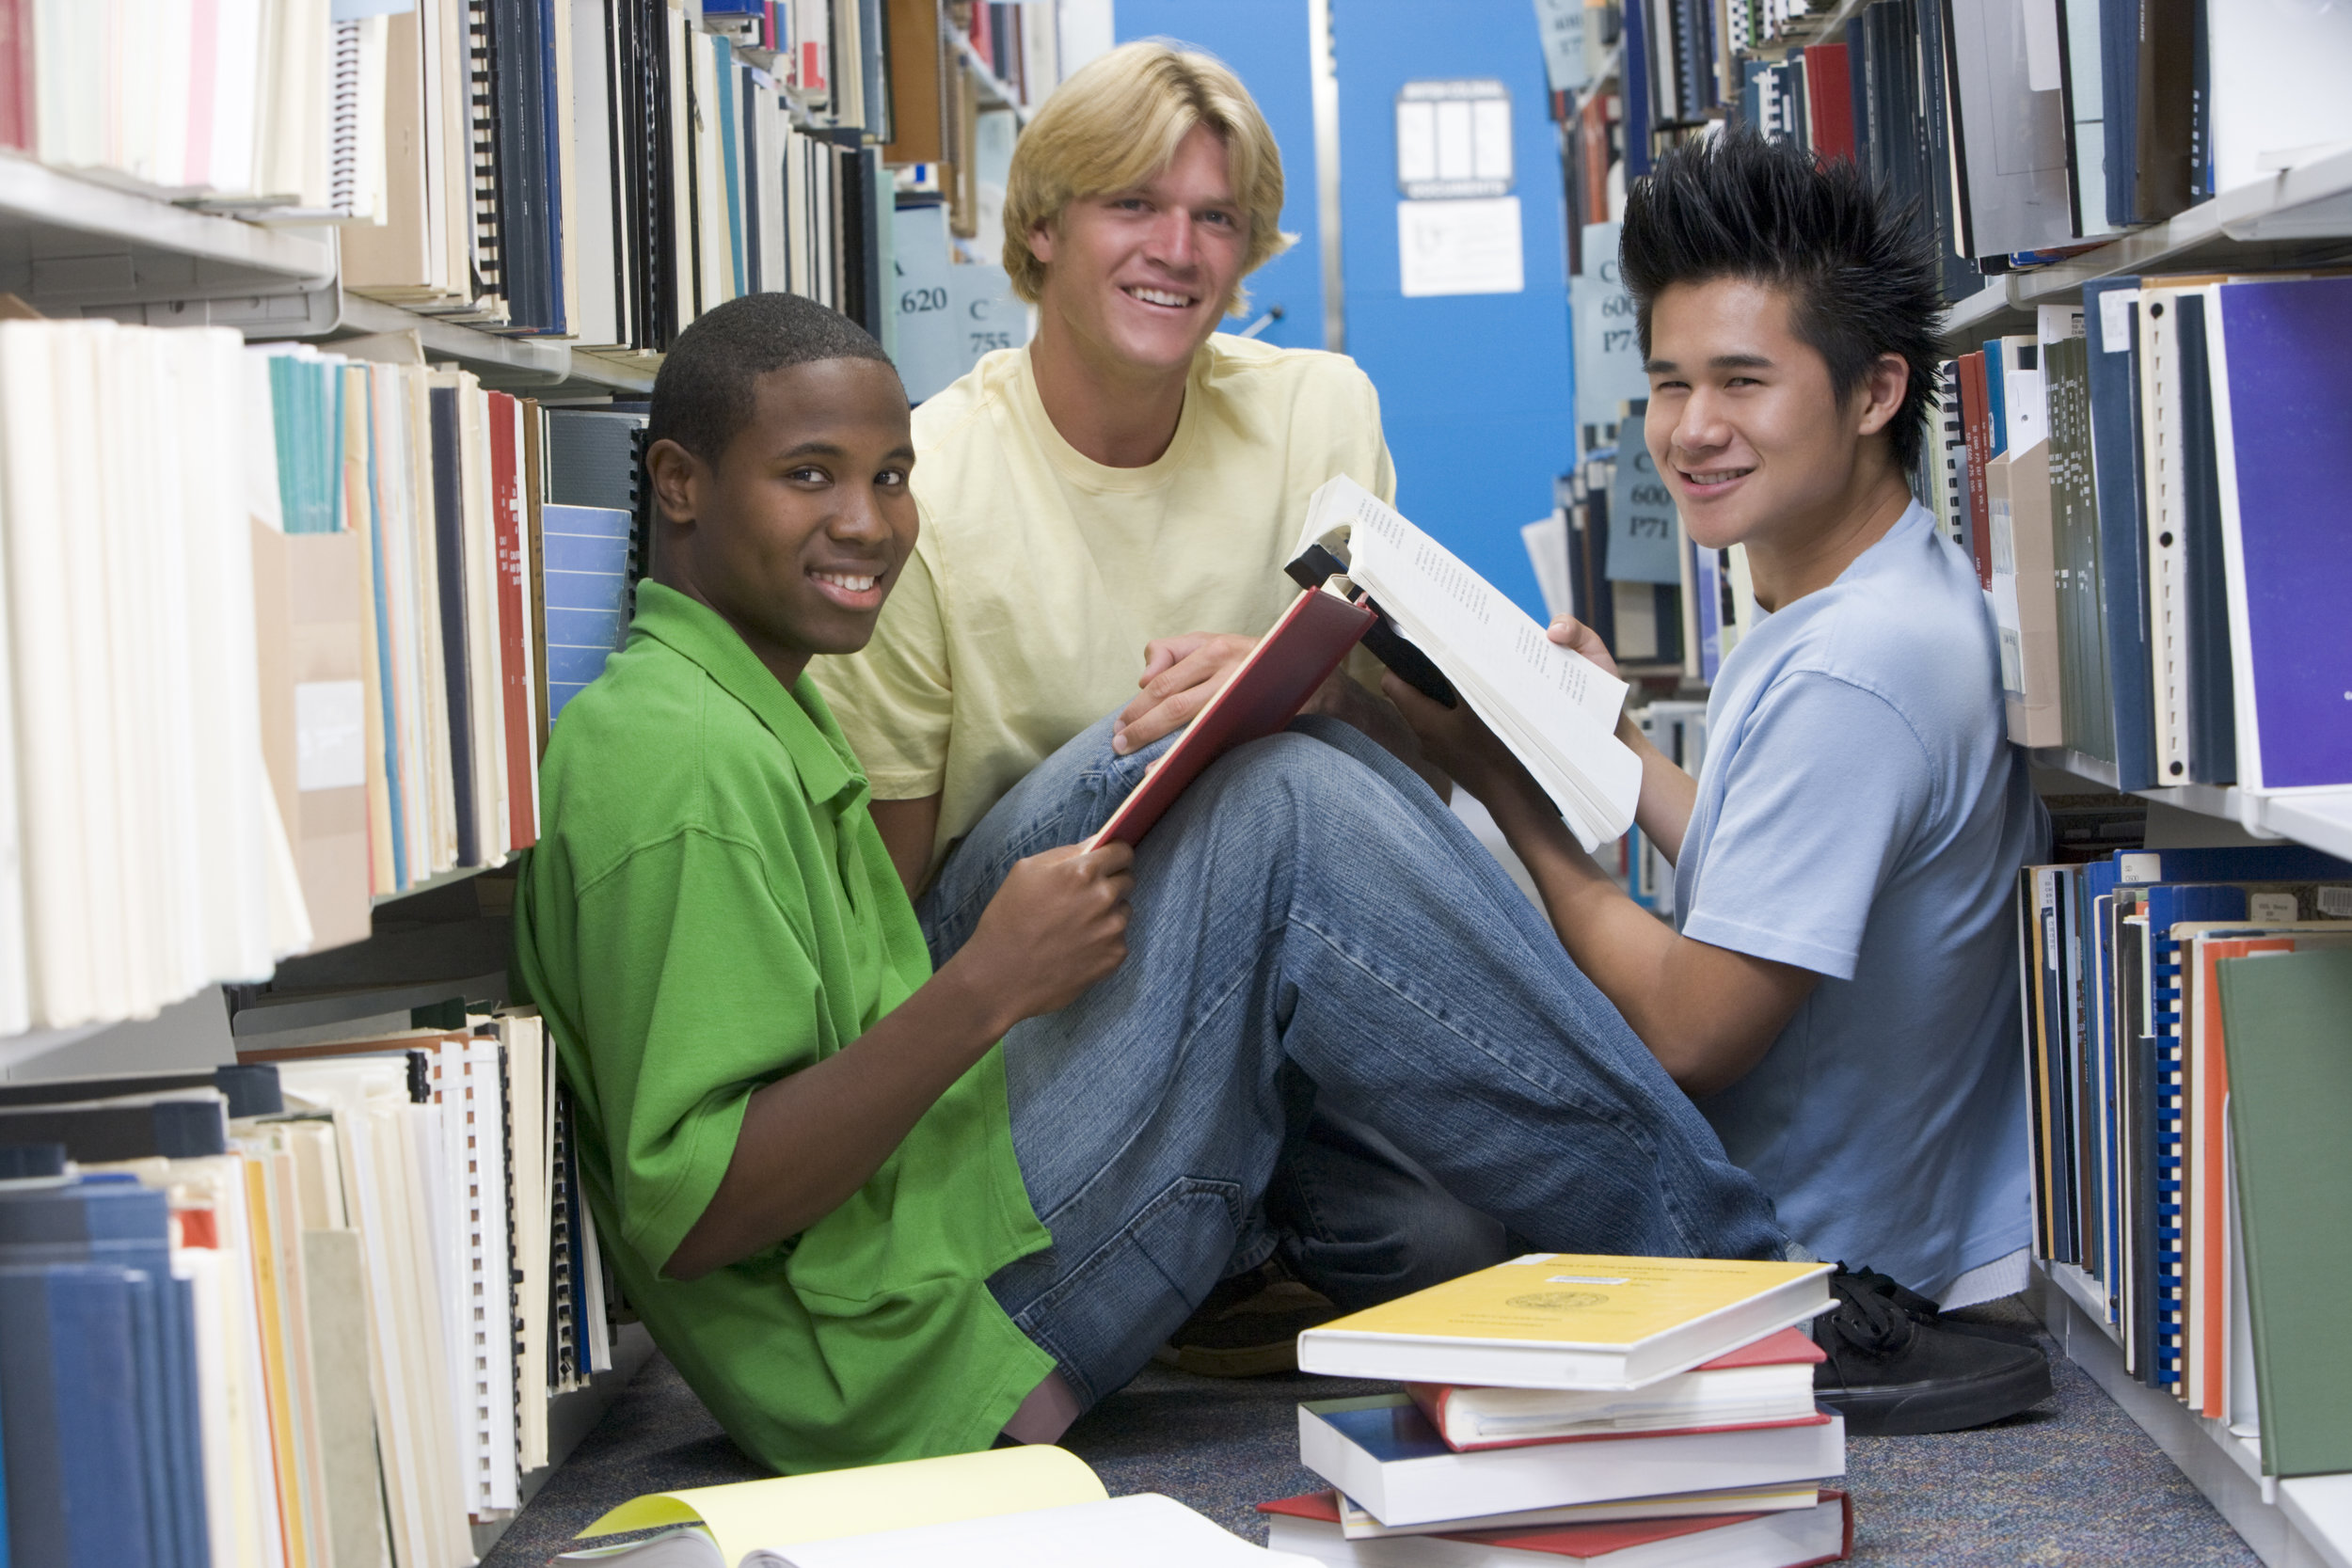 group-of-three-male-students-sitting-on-floor-of-library-surrounded-by-books_HFtNGBRSs.jpg